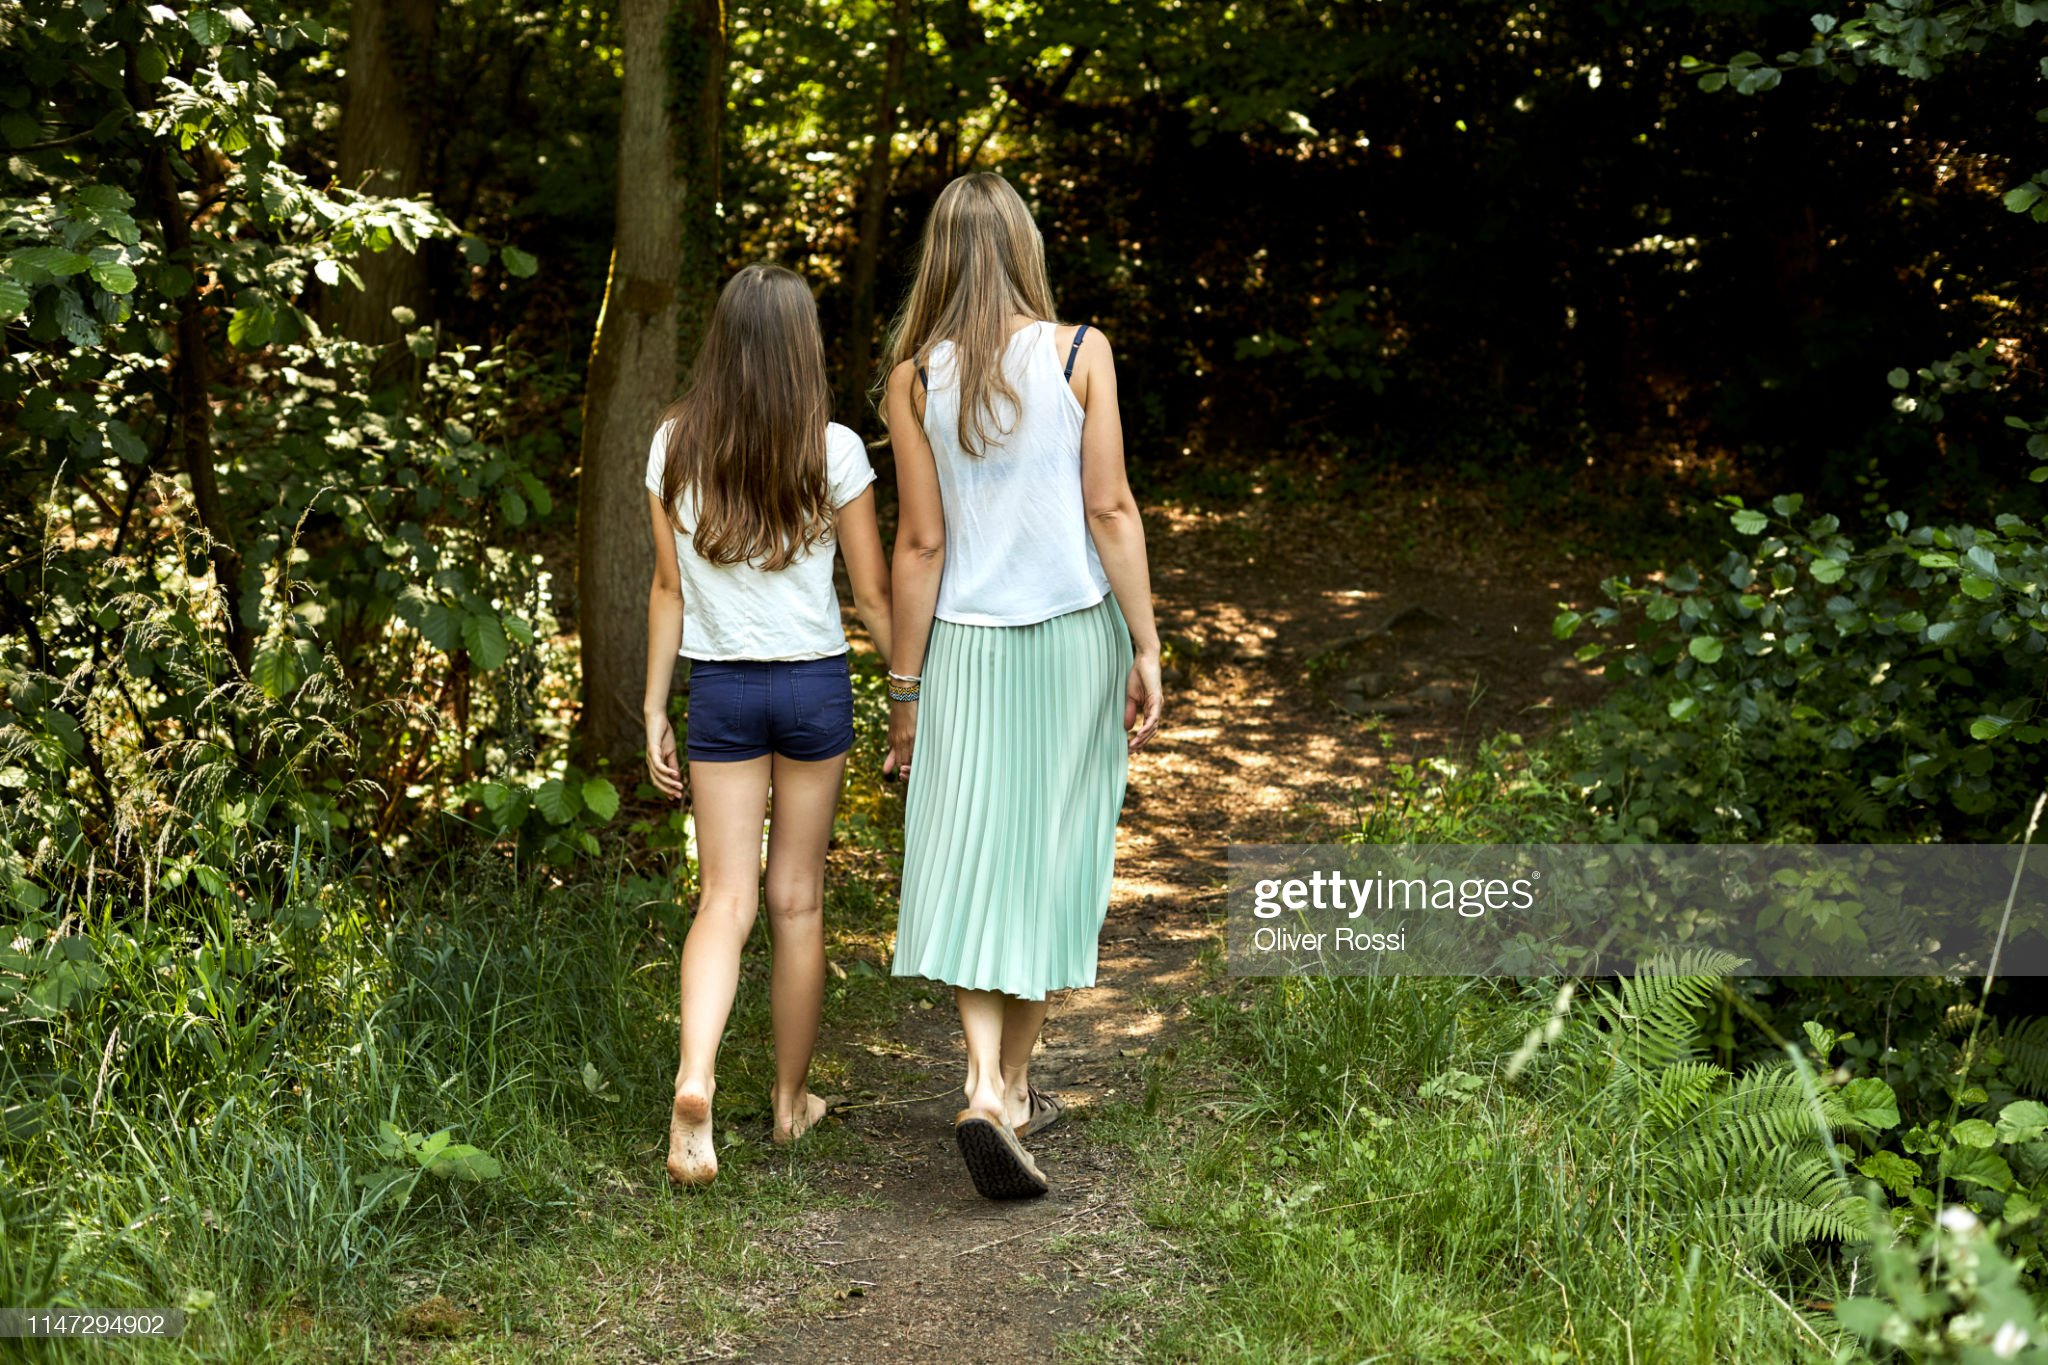 https://media.gettyimages.com/photos/rear-view-of-mother-and-daughter-walking-hand-in-hand-on-a-forest-picture-id1147294902?s=2048x2048